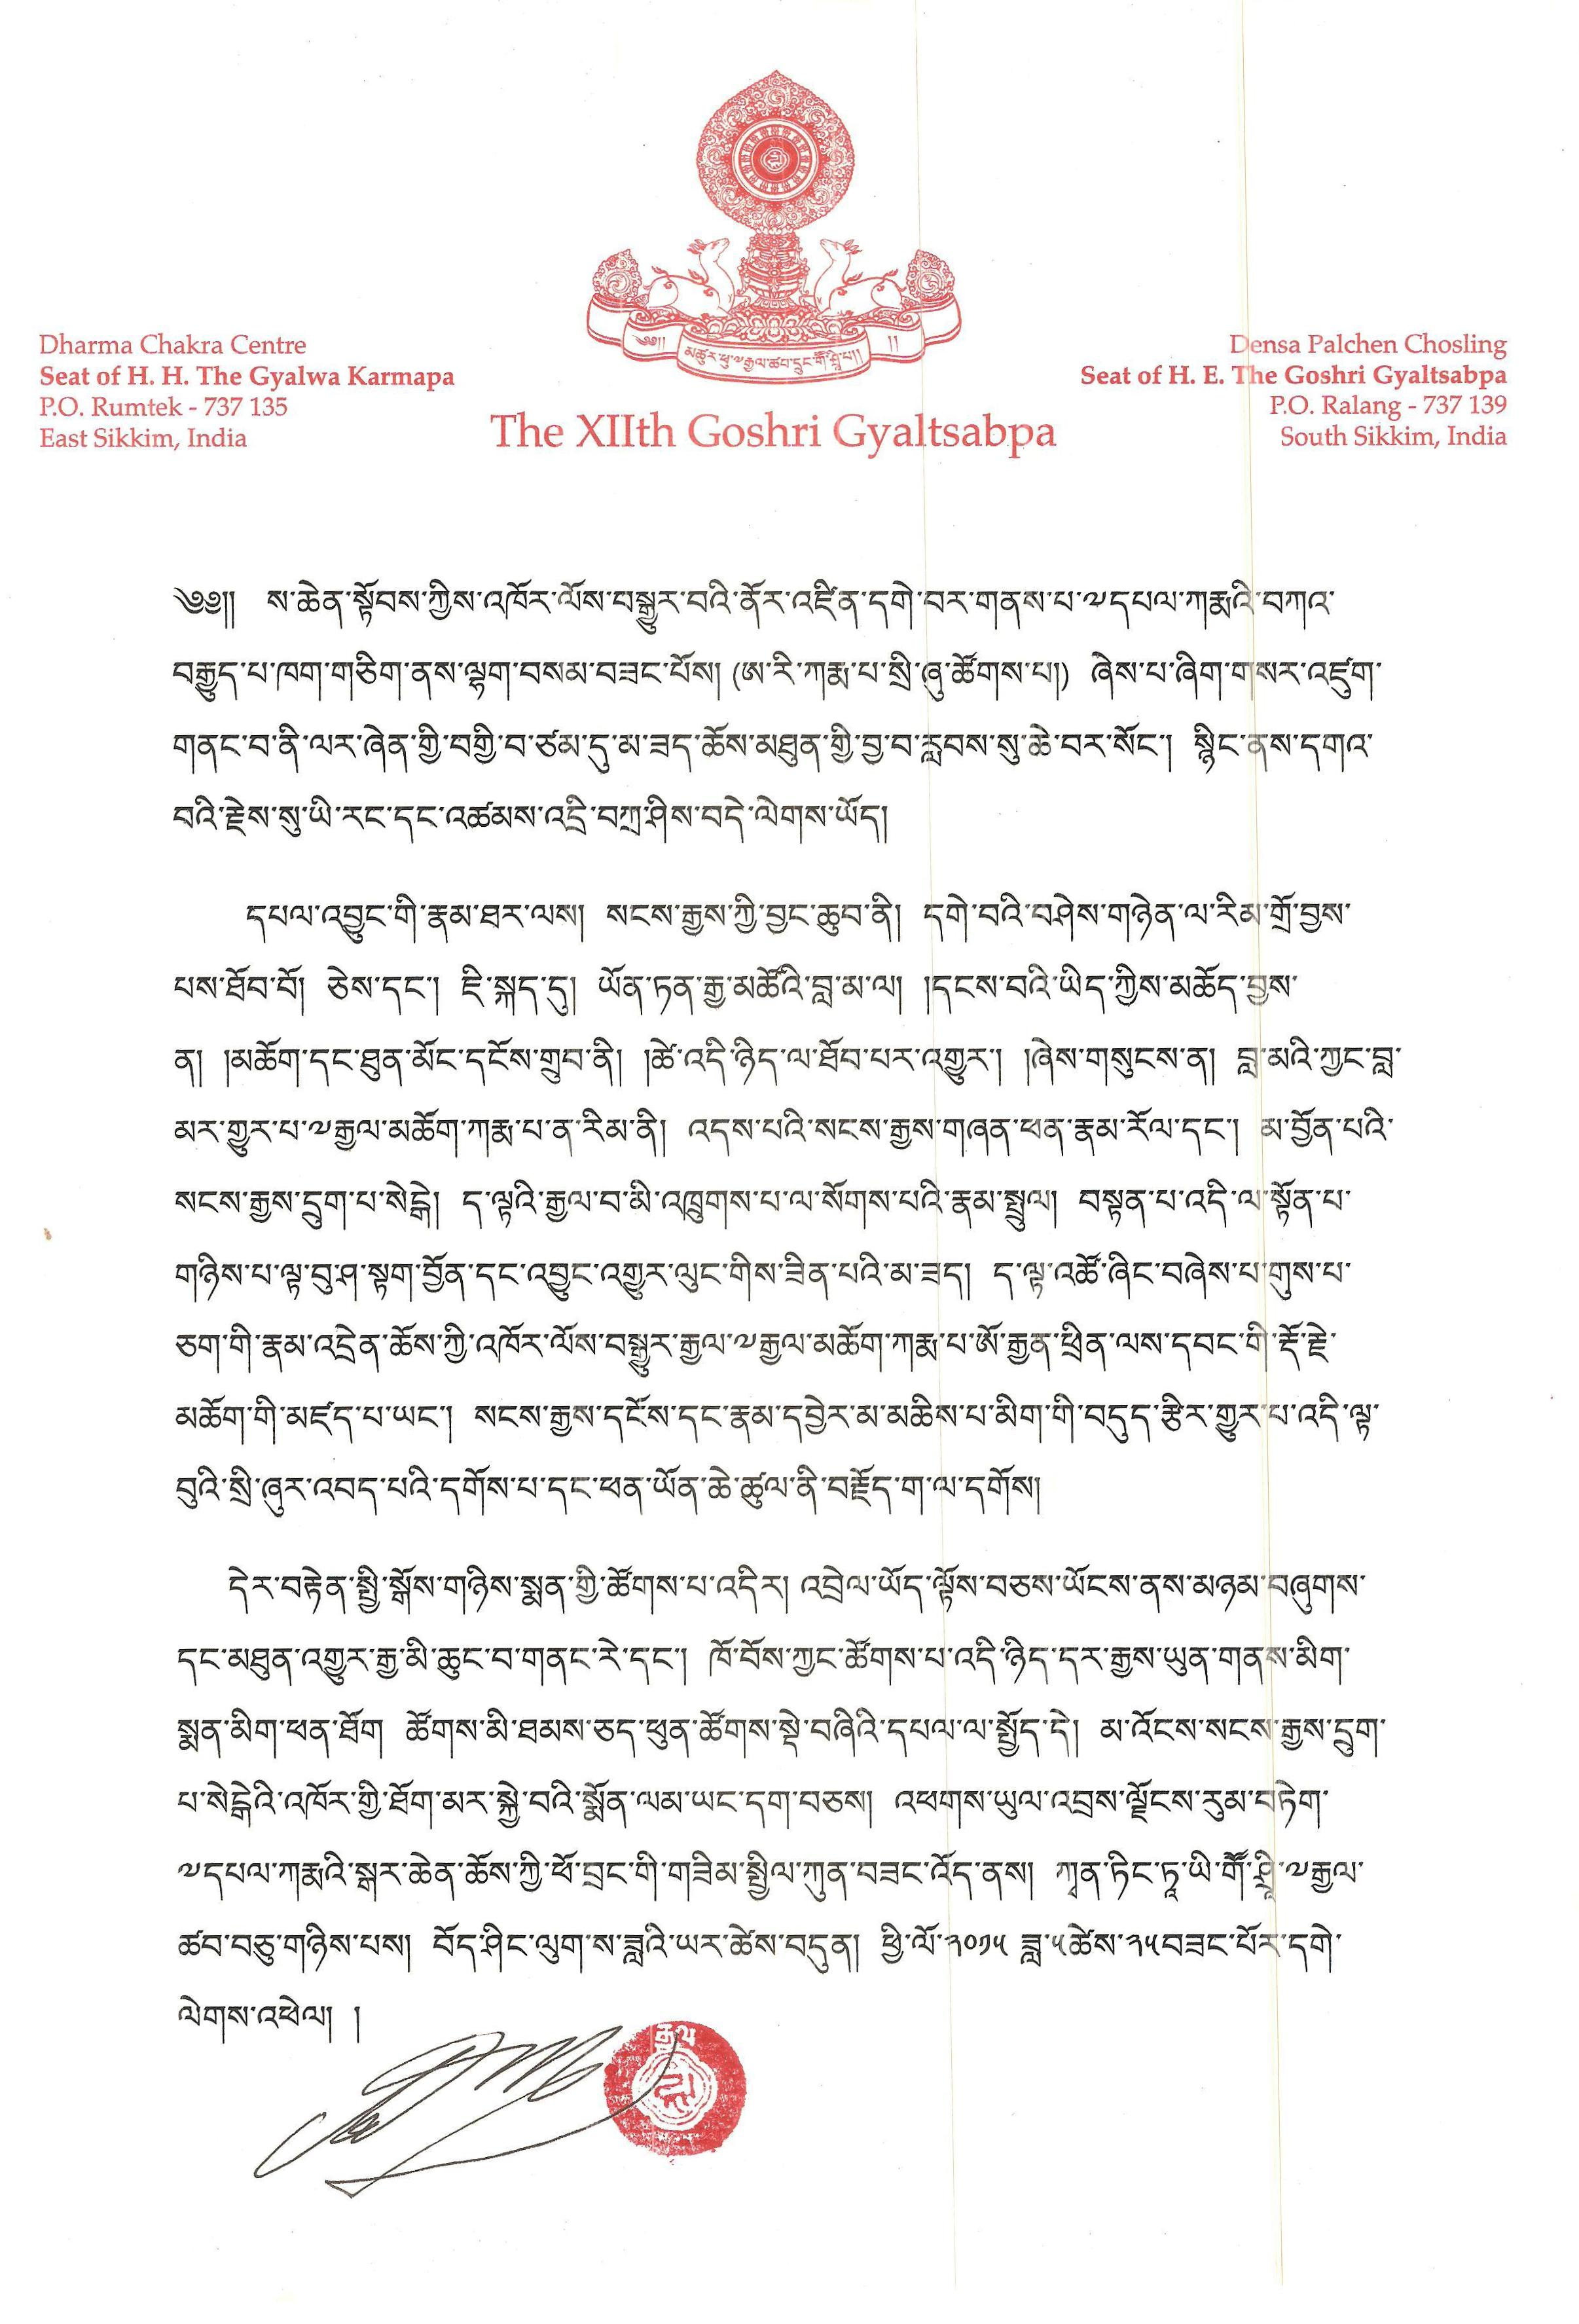 From H.E. 12th Goshri Gyaltsapa